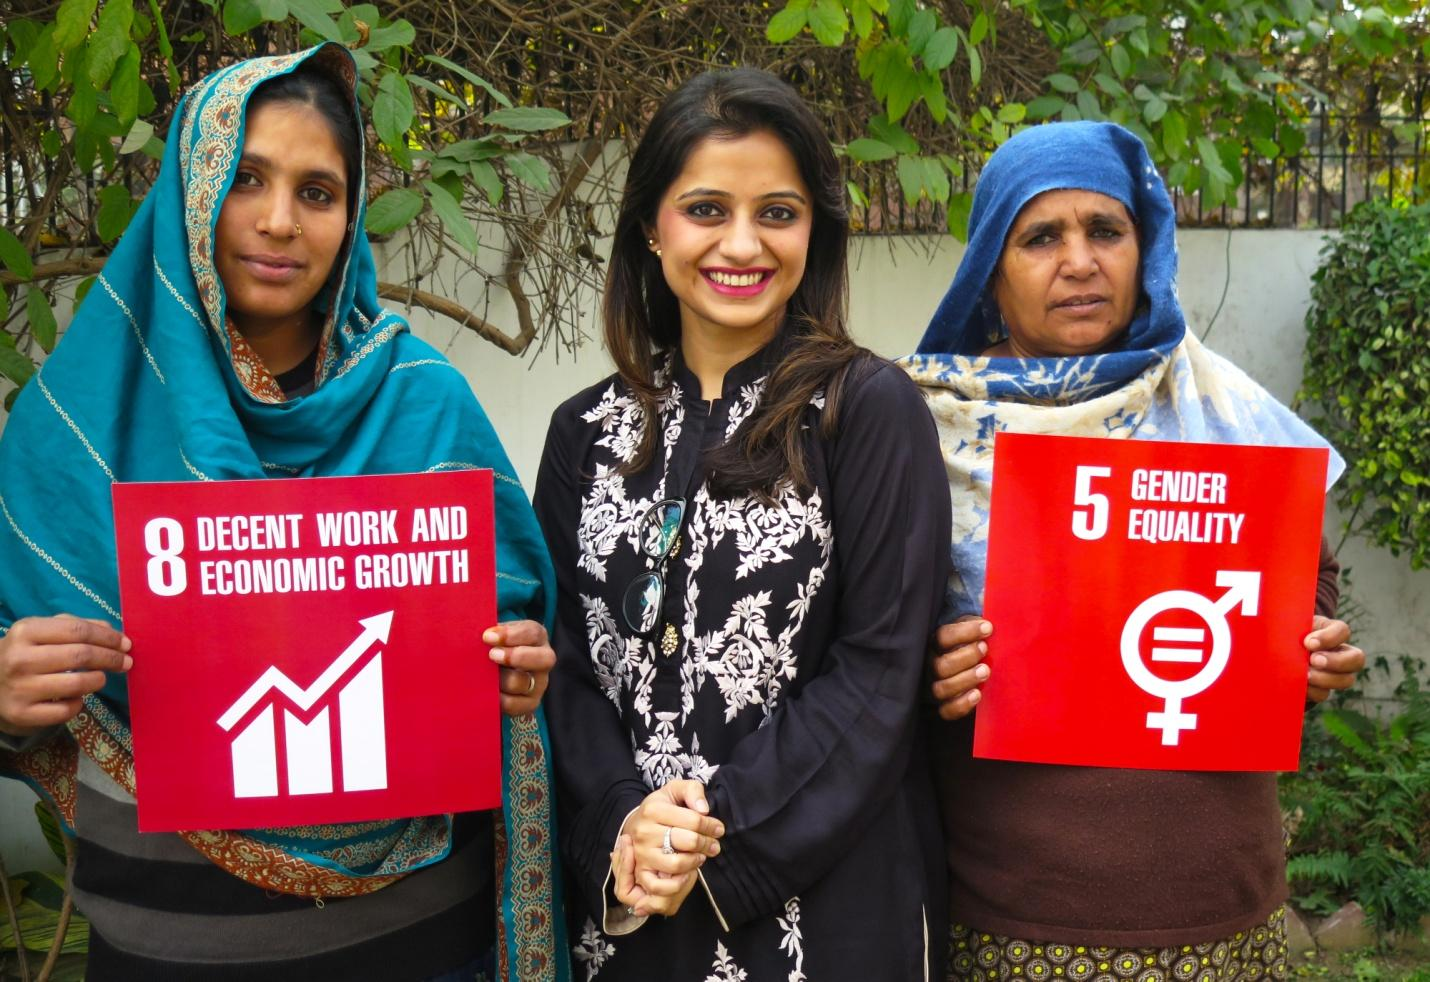 Women's economic and social rights play crucial role in countries' development